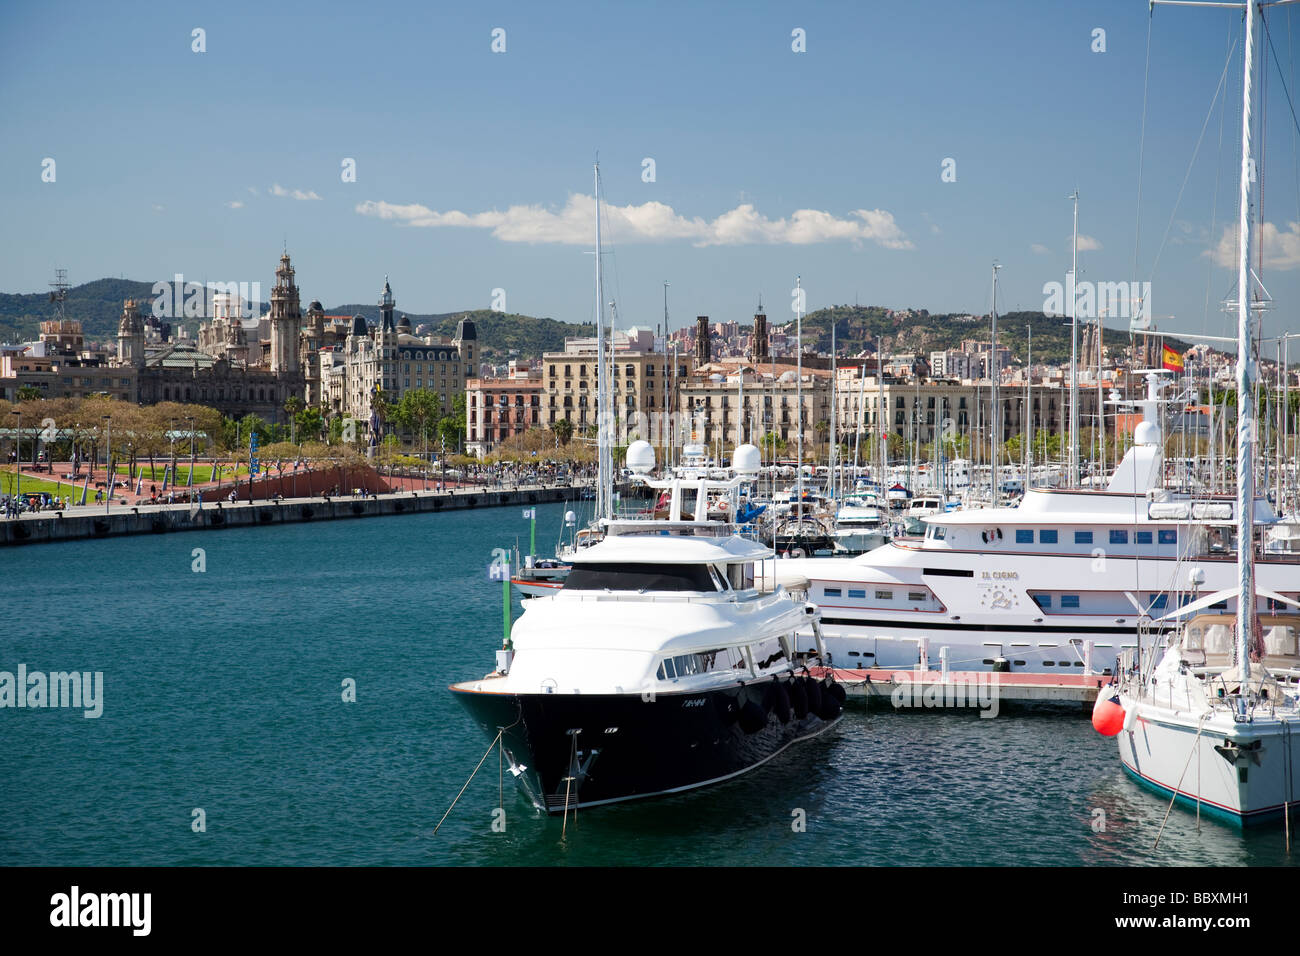 Boats in the harbour Barcelona Spain - Stock Image